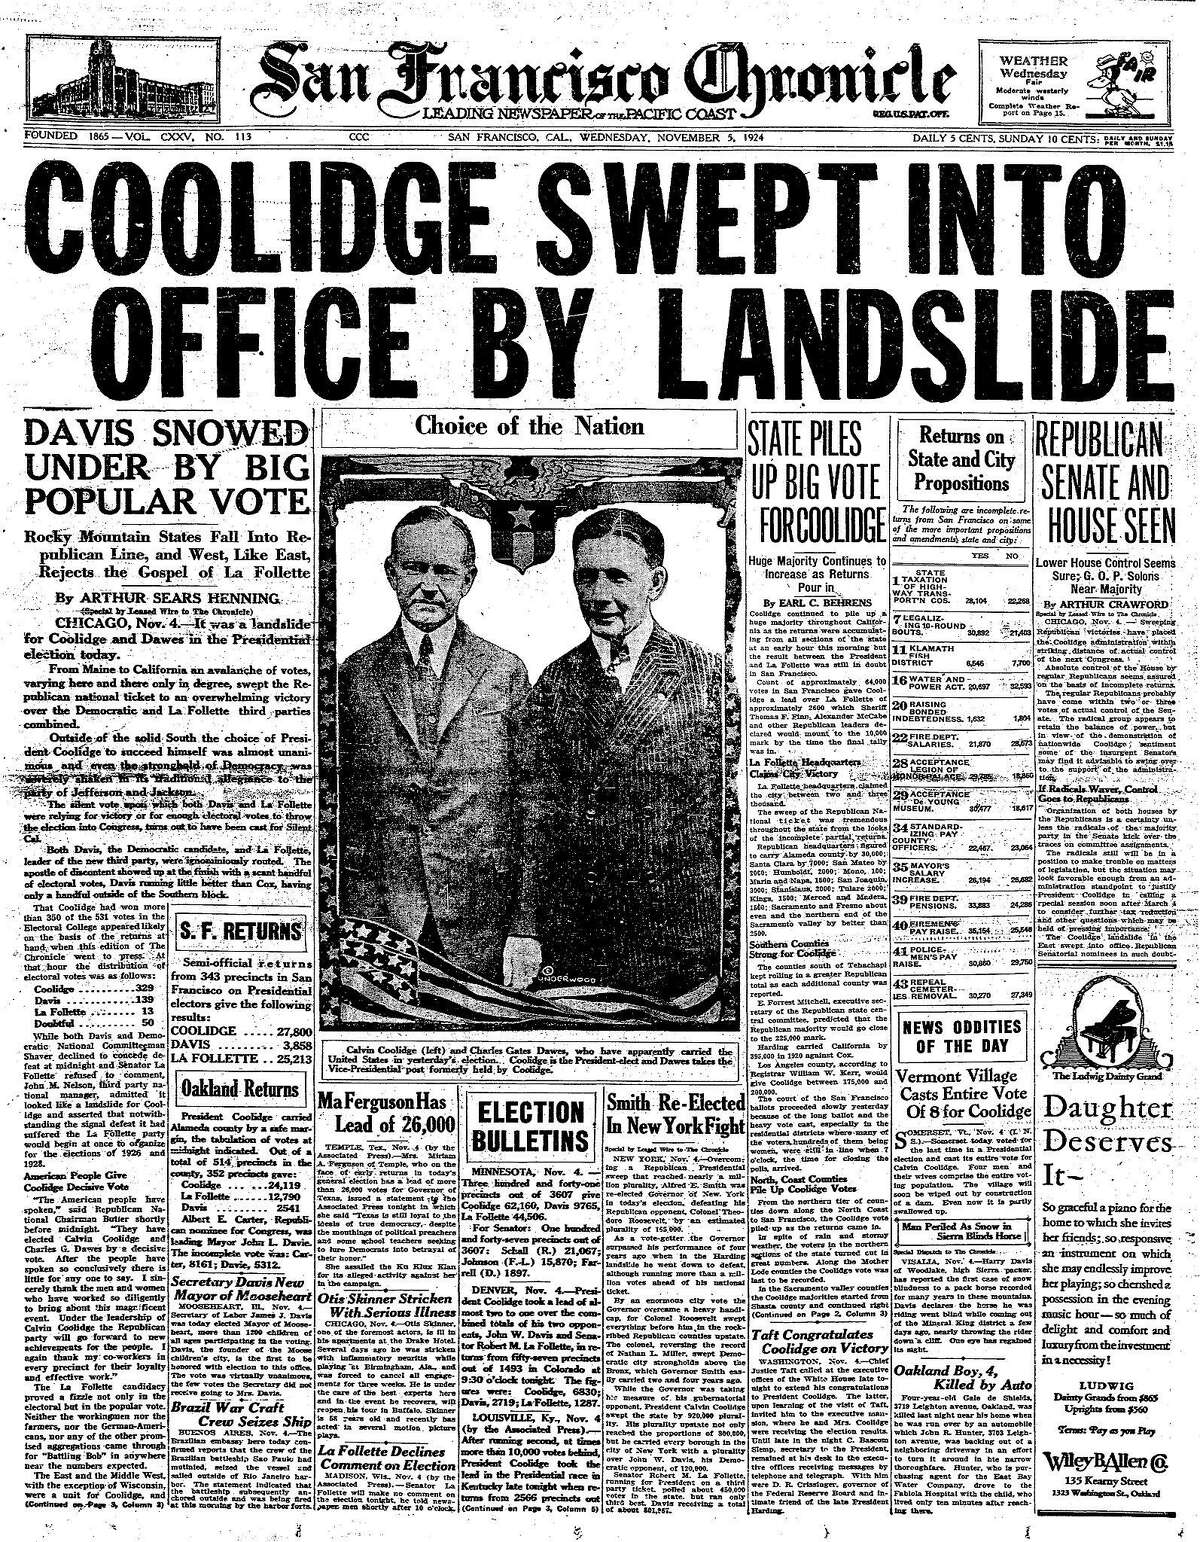 Calvin Coolidge won the 1924 presidential election in a landslide, but in San Francisco third-party candidate Robert La Follette of the Progressive Party would do well, finishing second far ahead of Democratic candidate